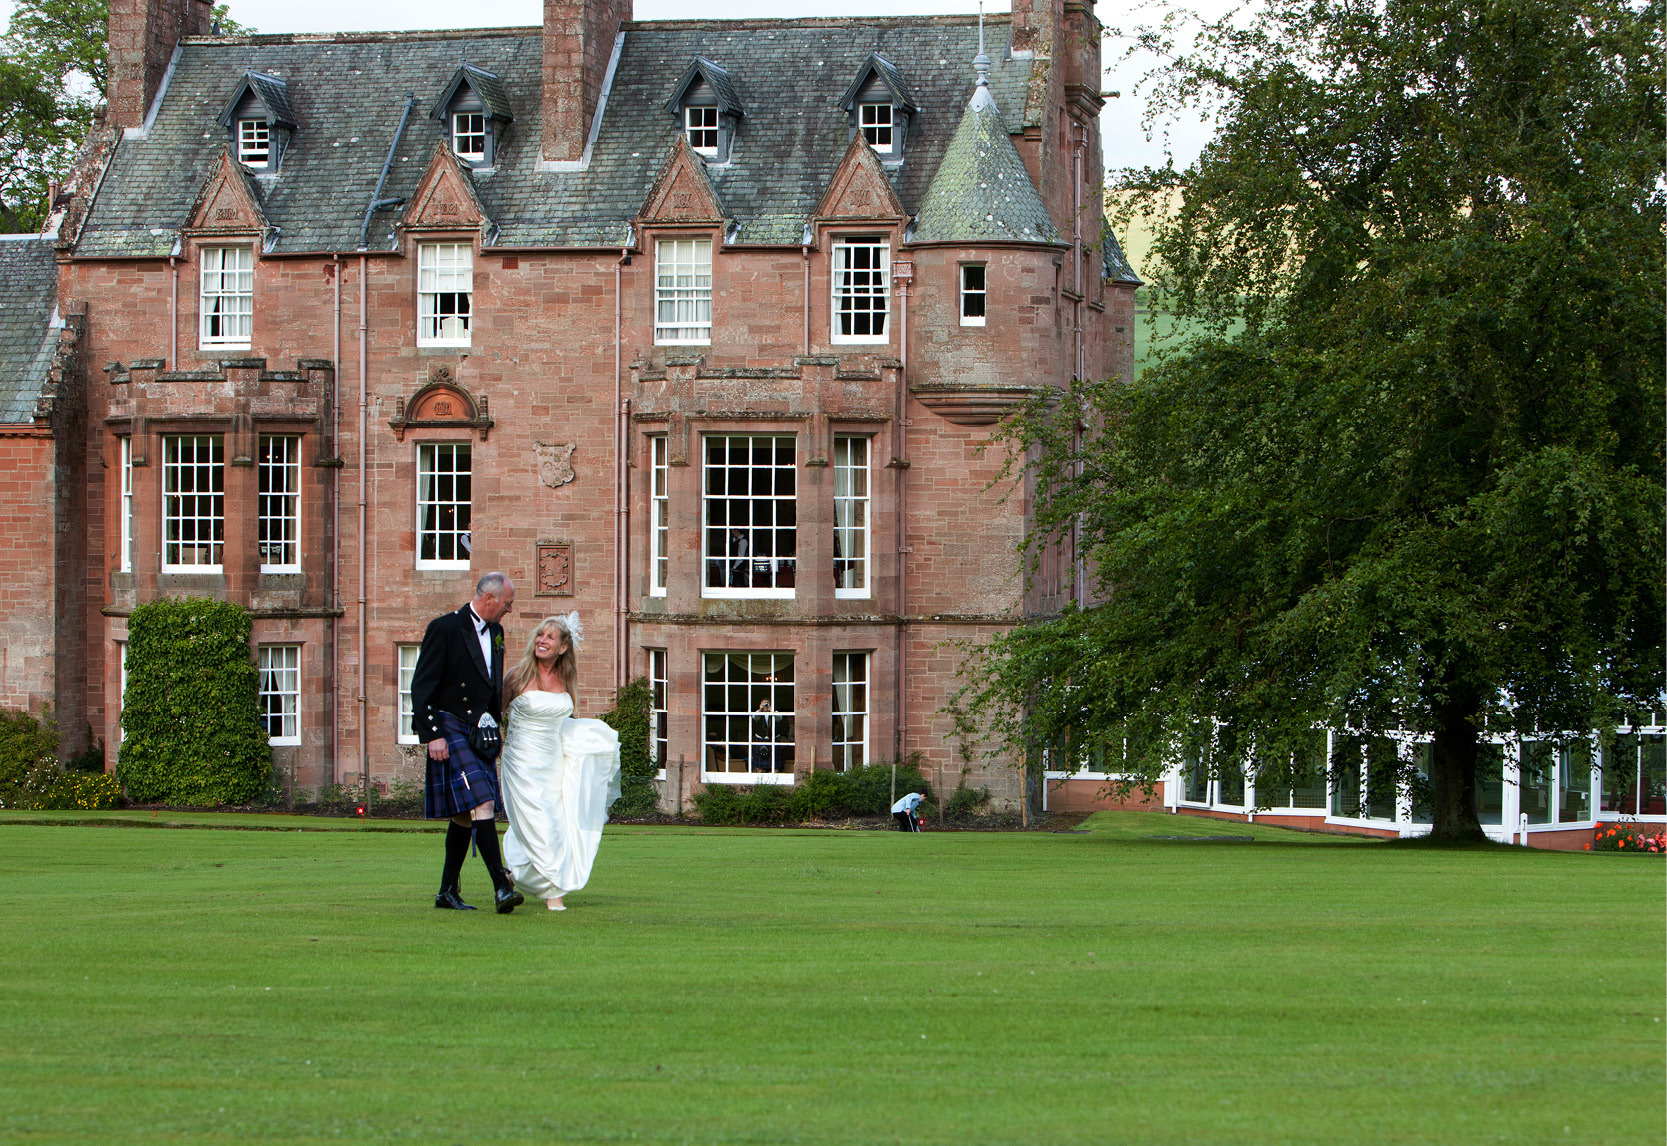 Cringletie House Hotel in Peebles is up for the south east wedding venue of the year